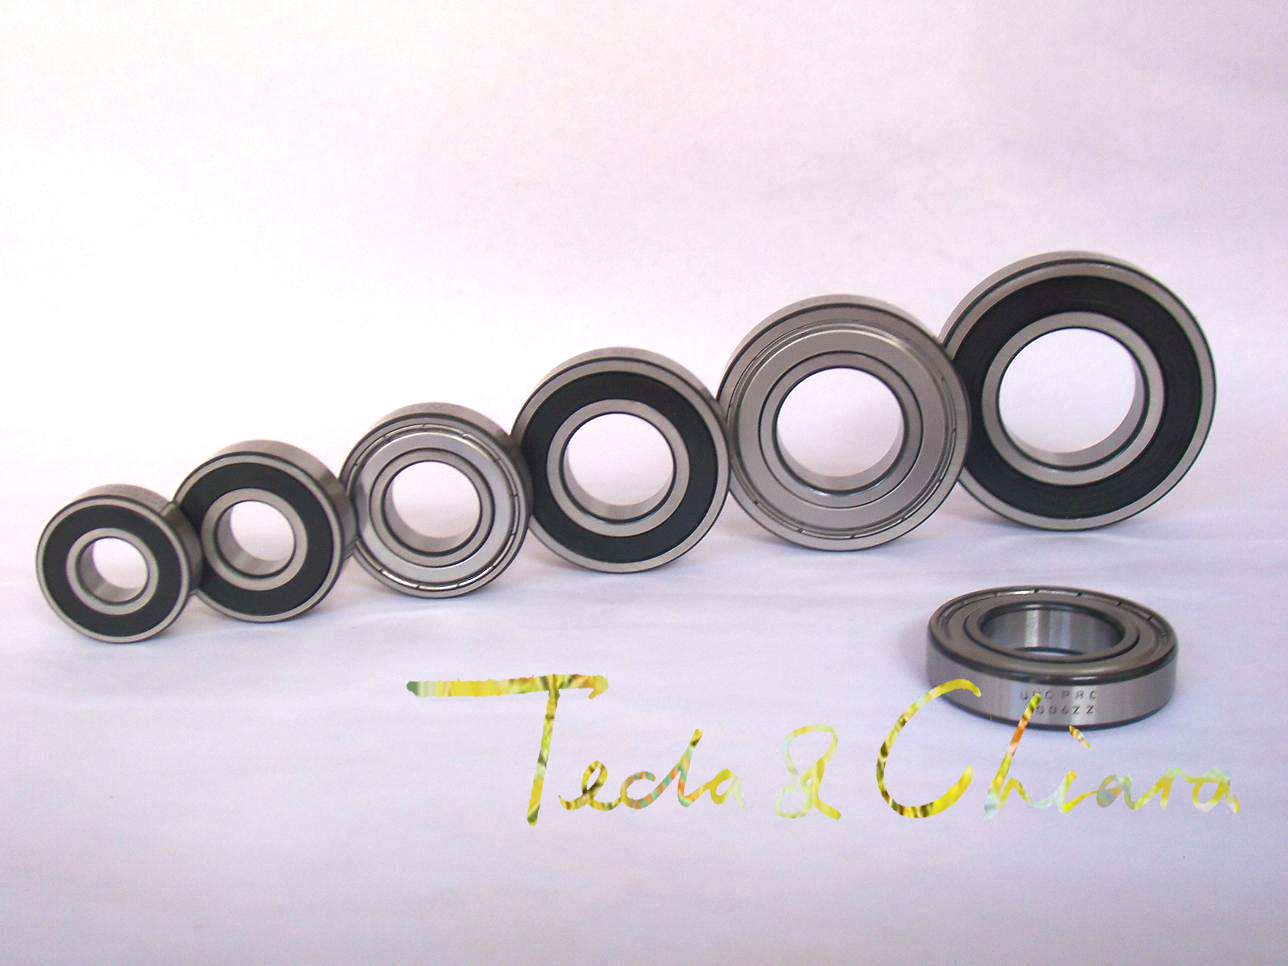 6205 6205ZZ 6205RS 6205-2Z 6205Z 6205-2RS ZZ RS RZ 2RZ Deep Groove Ball Bearings 25 x 52 x 15mm High Quality 6902 6902zz 6902rs 6902 2z 6902z 6902 2rs zz rs rz 2rz deep groove ball bearings 15 x 28 x 7mm high quality